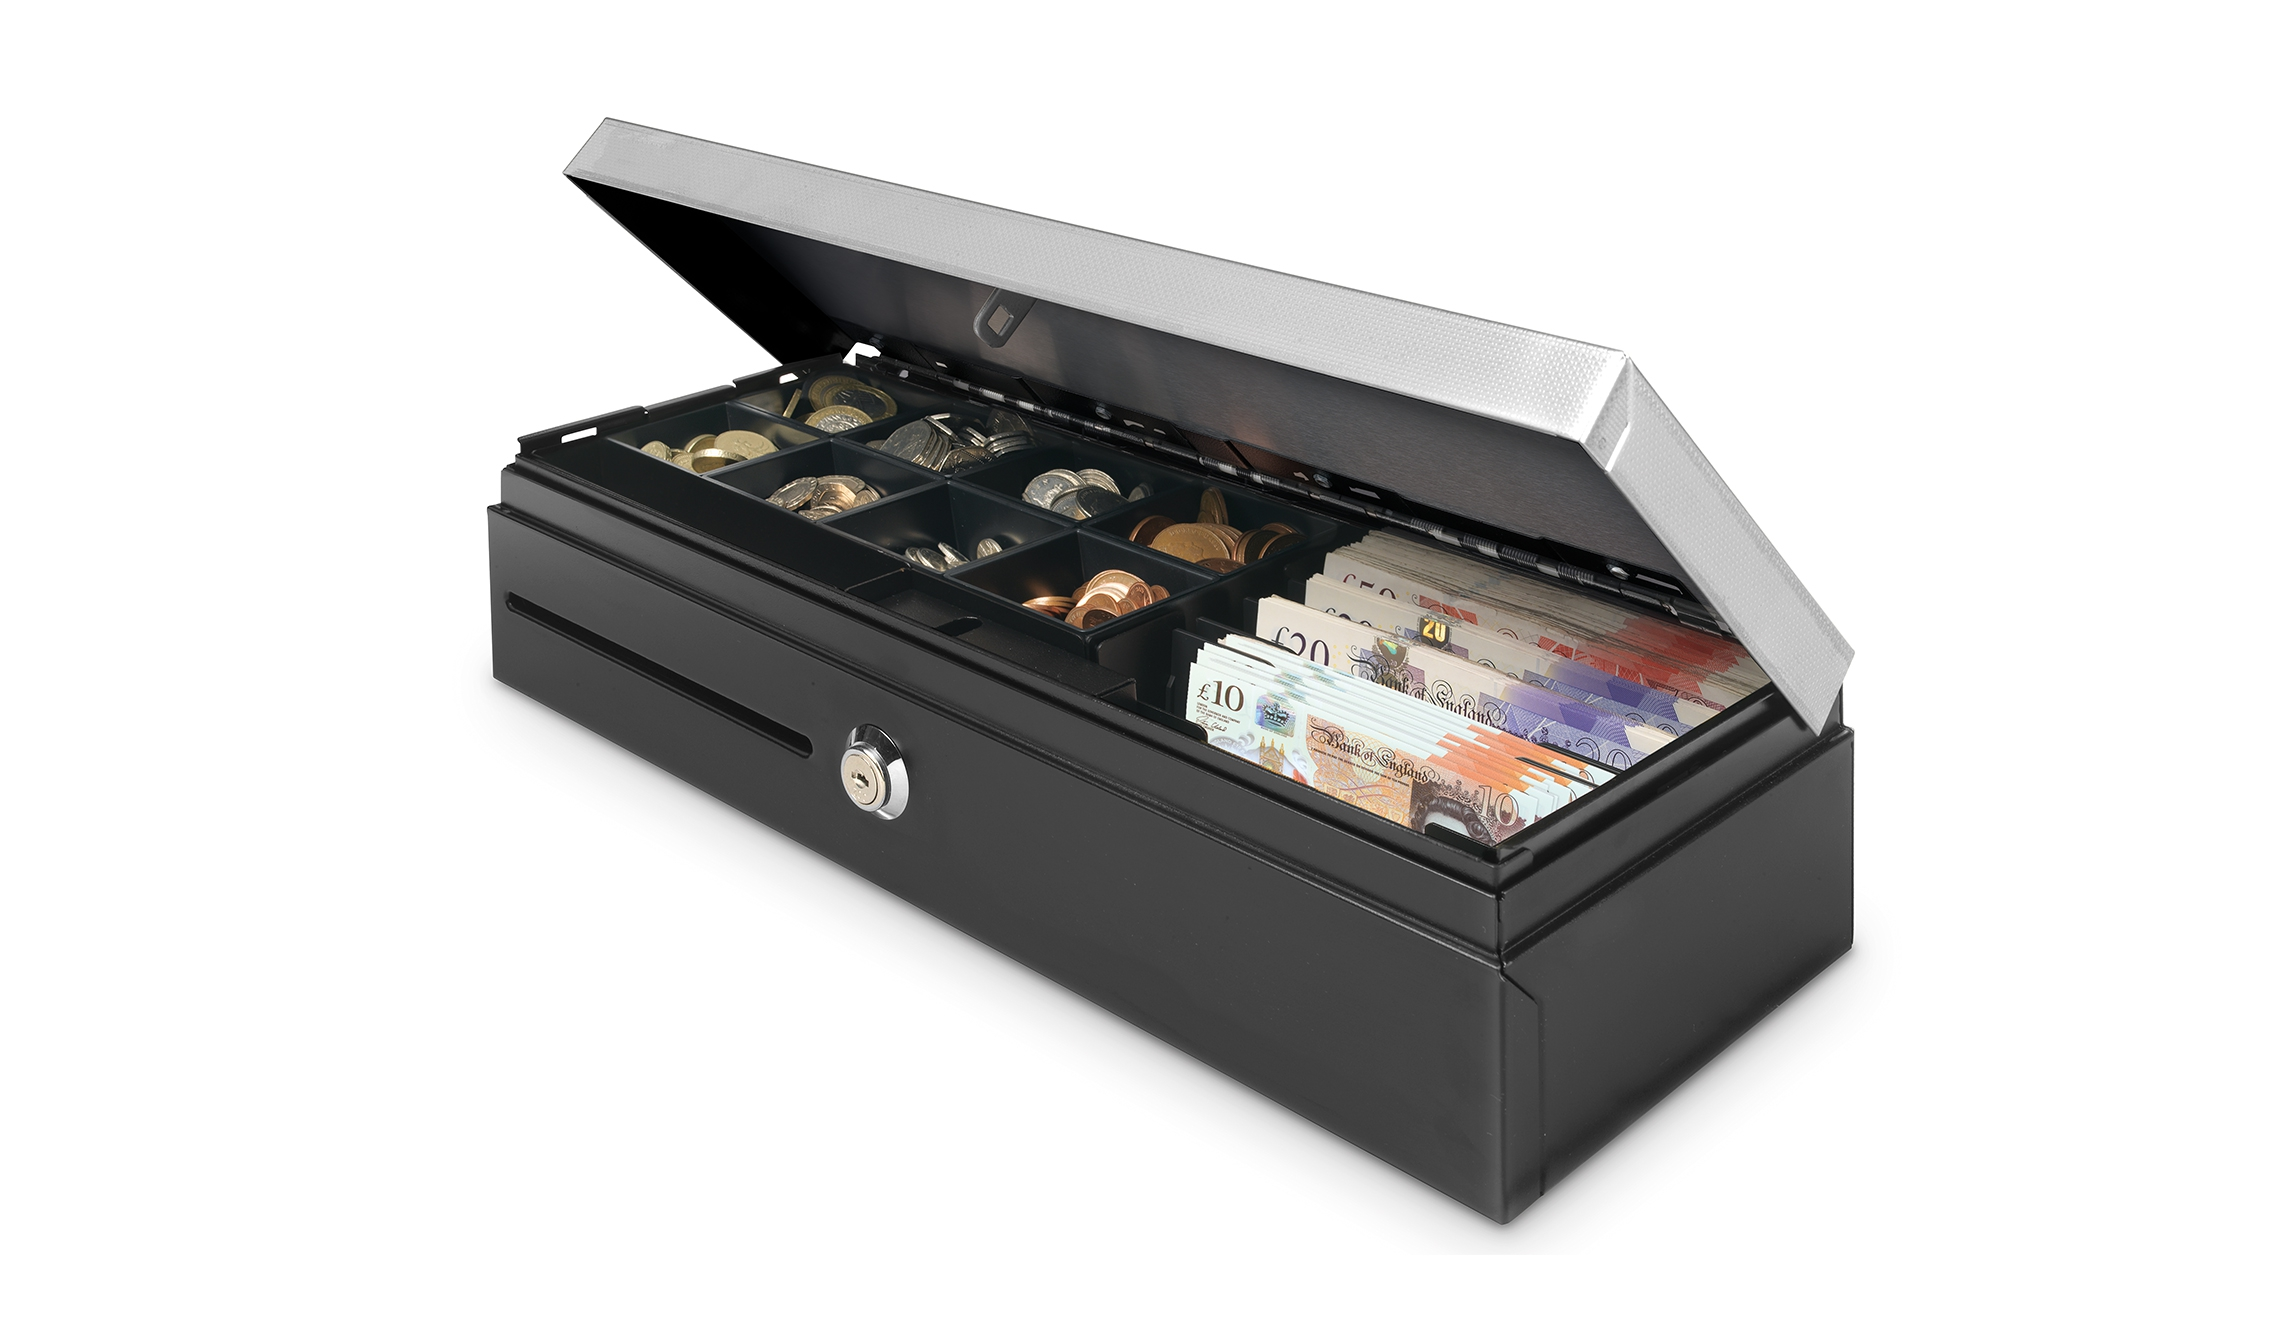 safescan-hd4617c-cash-drawer